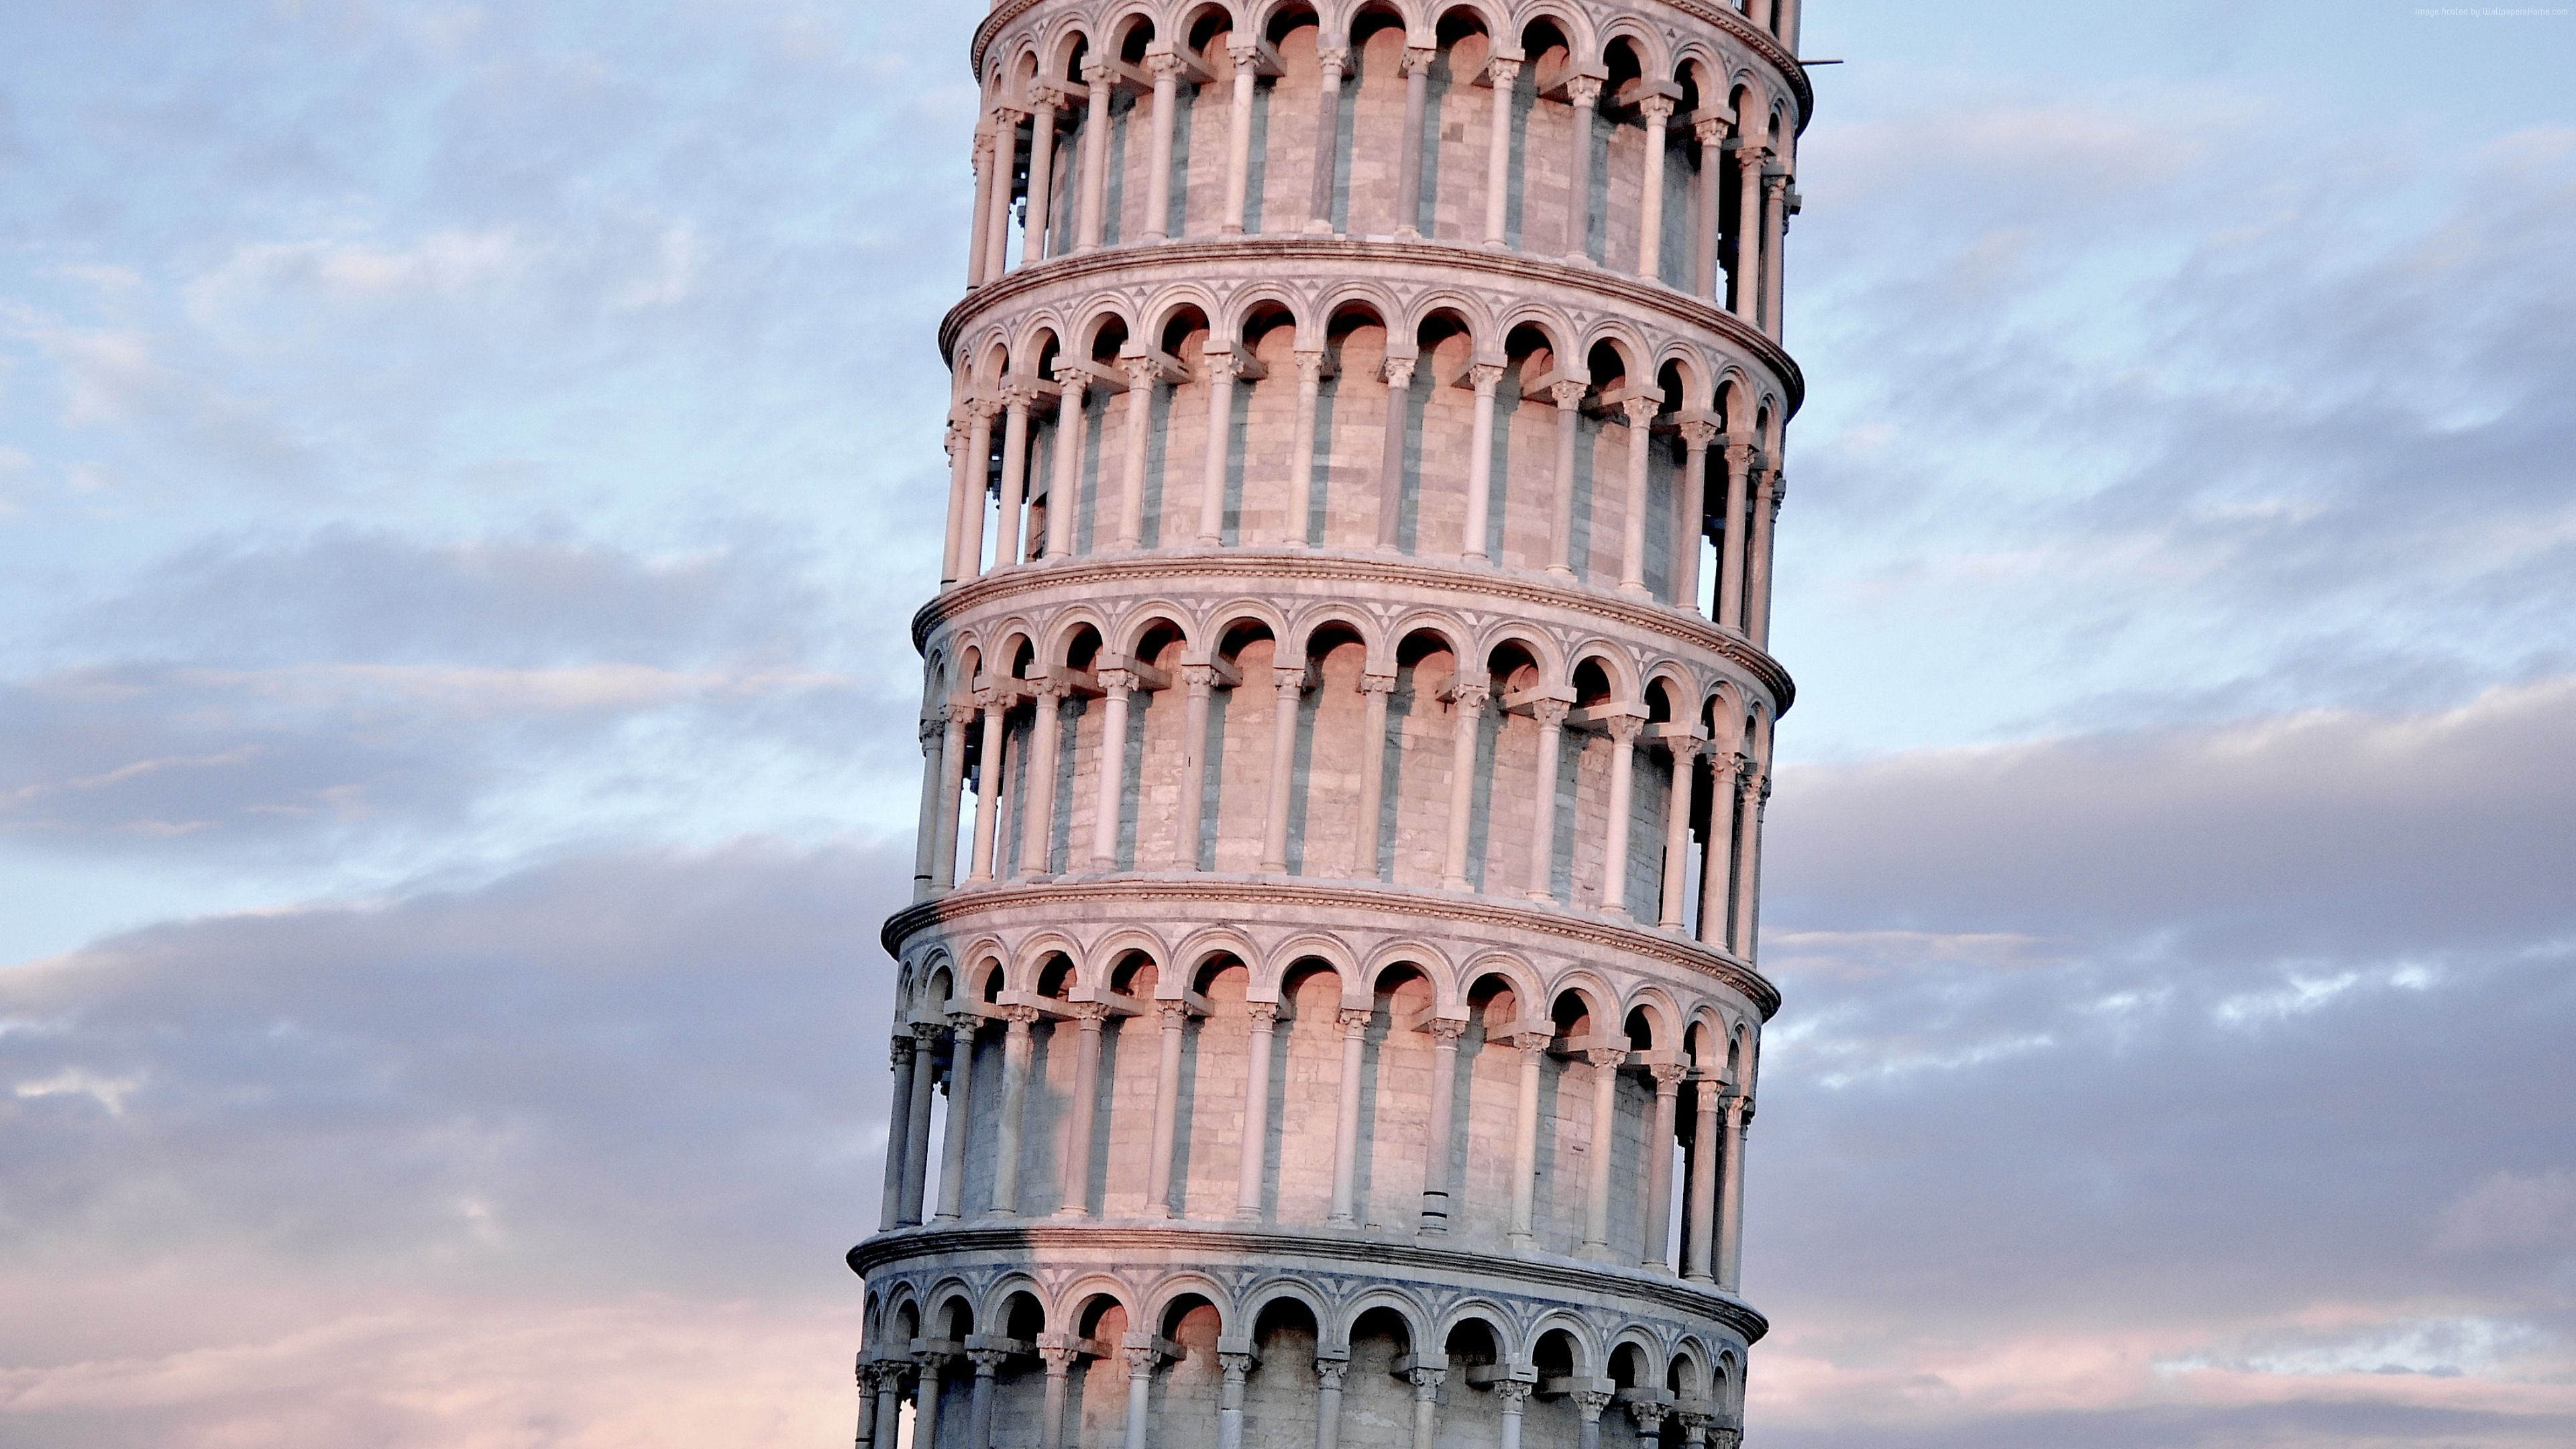 Wallpaper Tower of Pisa, Pisa, Italy, Europe, travel, tourism, Leaning Tower of Pisa, Architecture